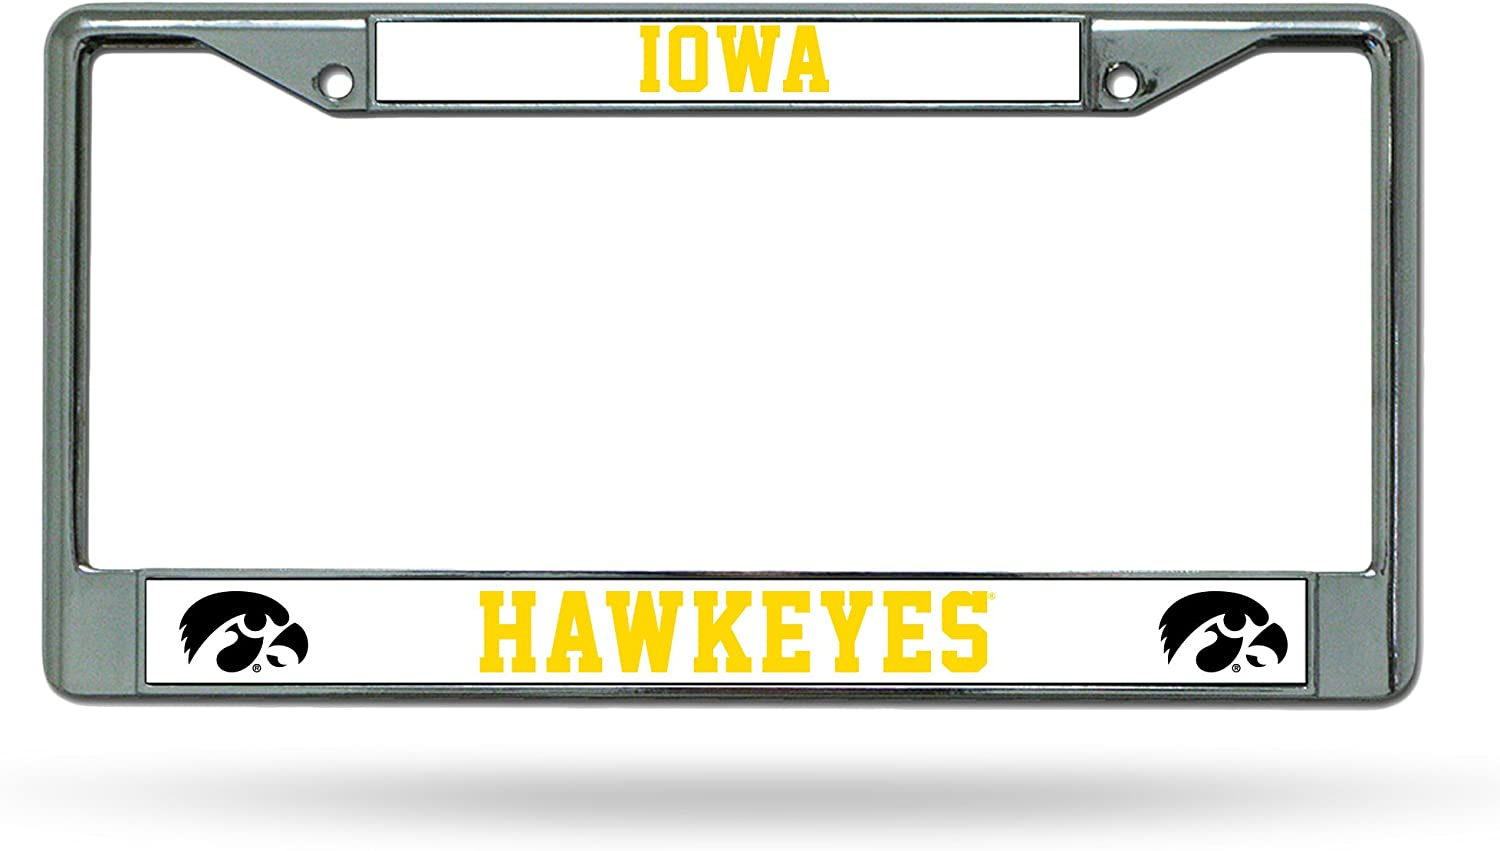 NCAA Iowa Hawkeyes Standard Chrome Max 88% OFF Sales of SALE items from new works Plate Frame License